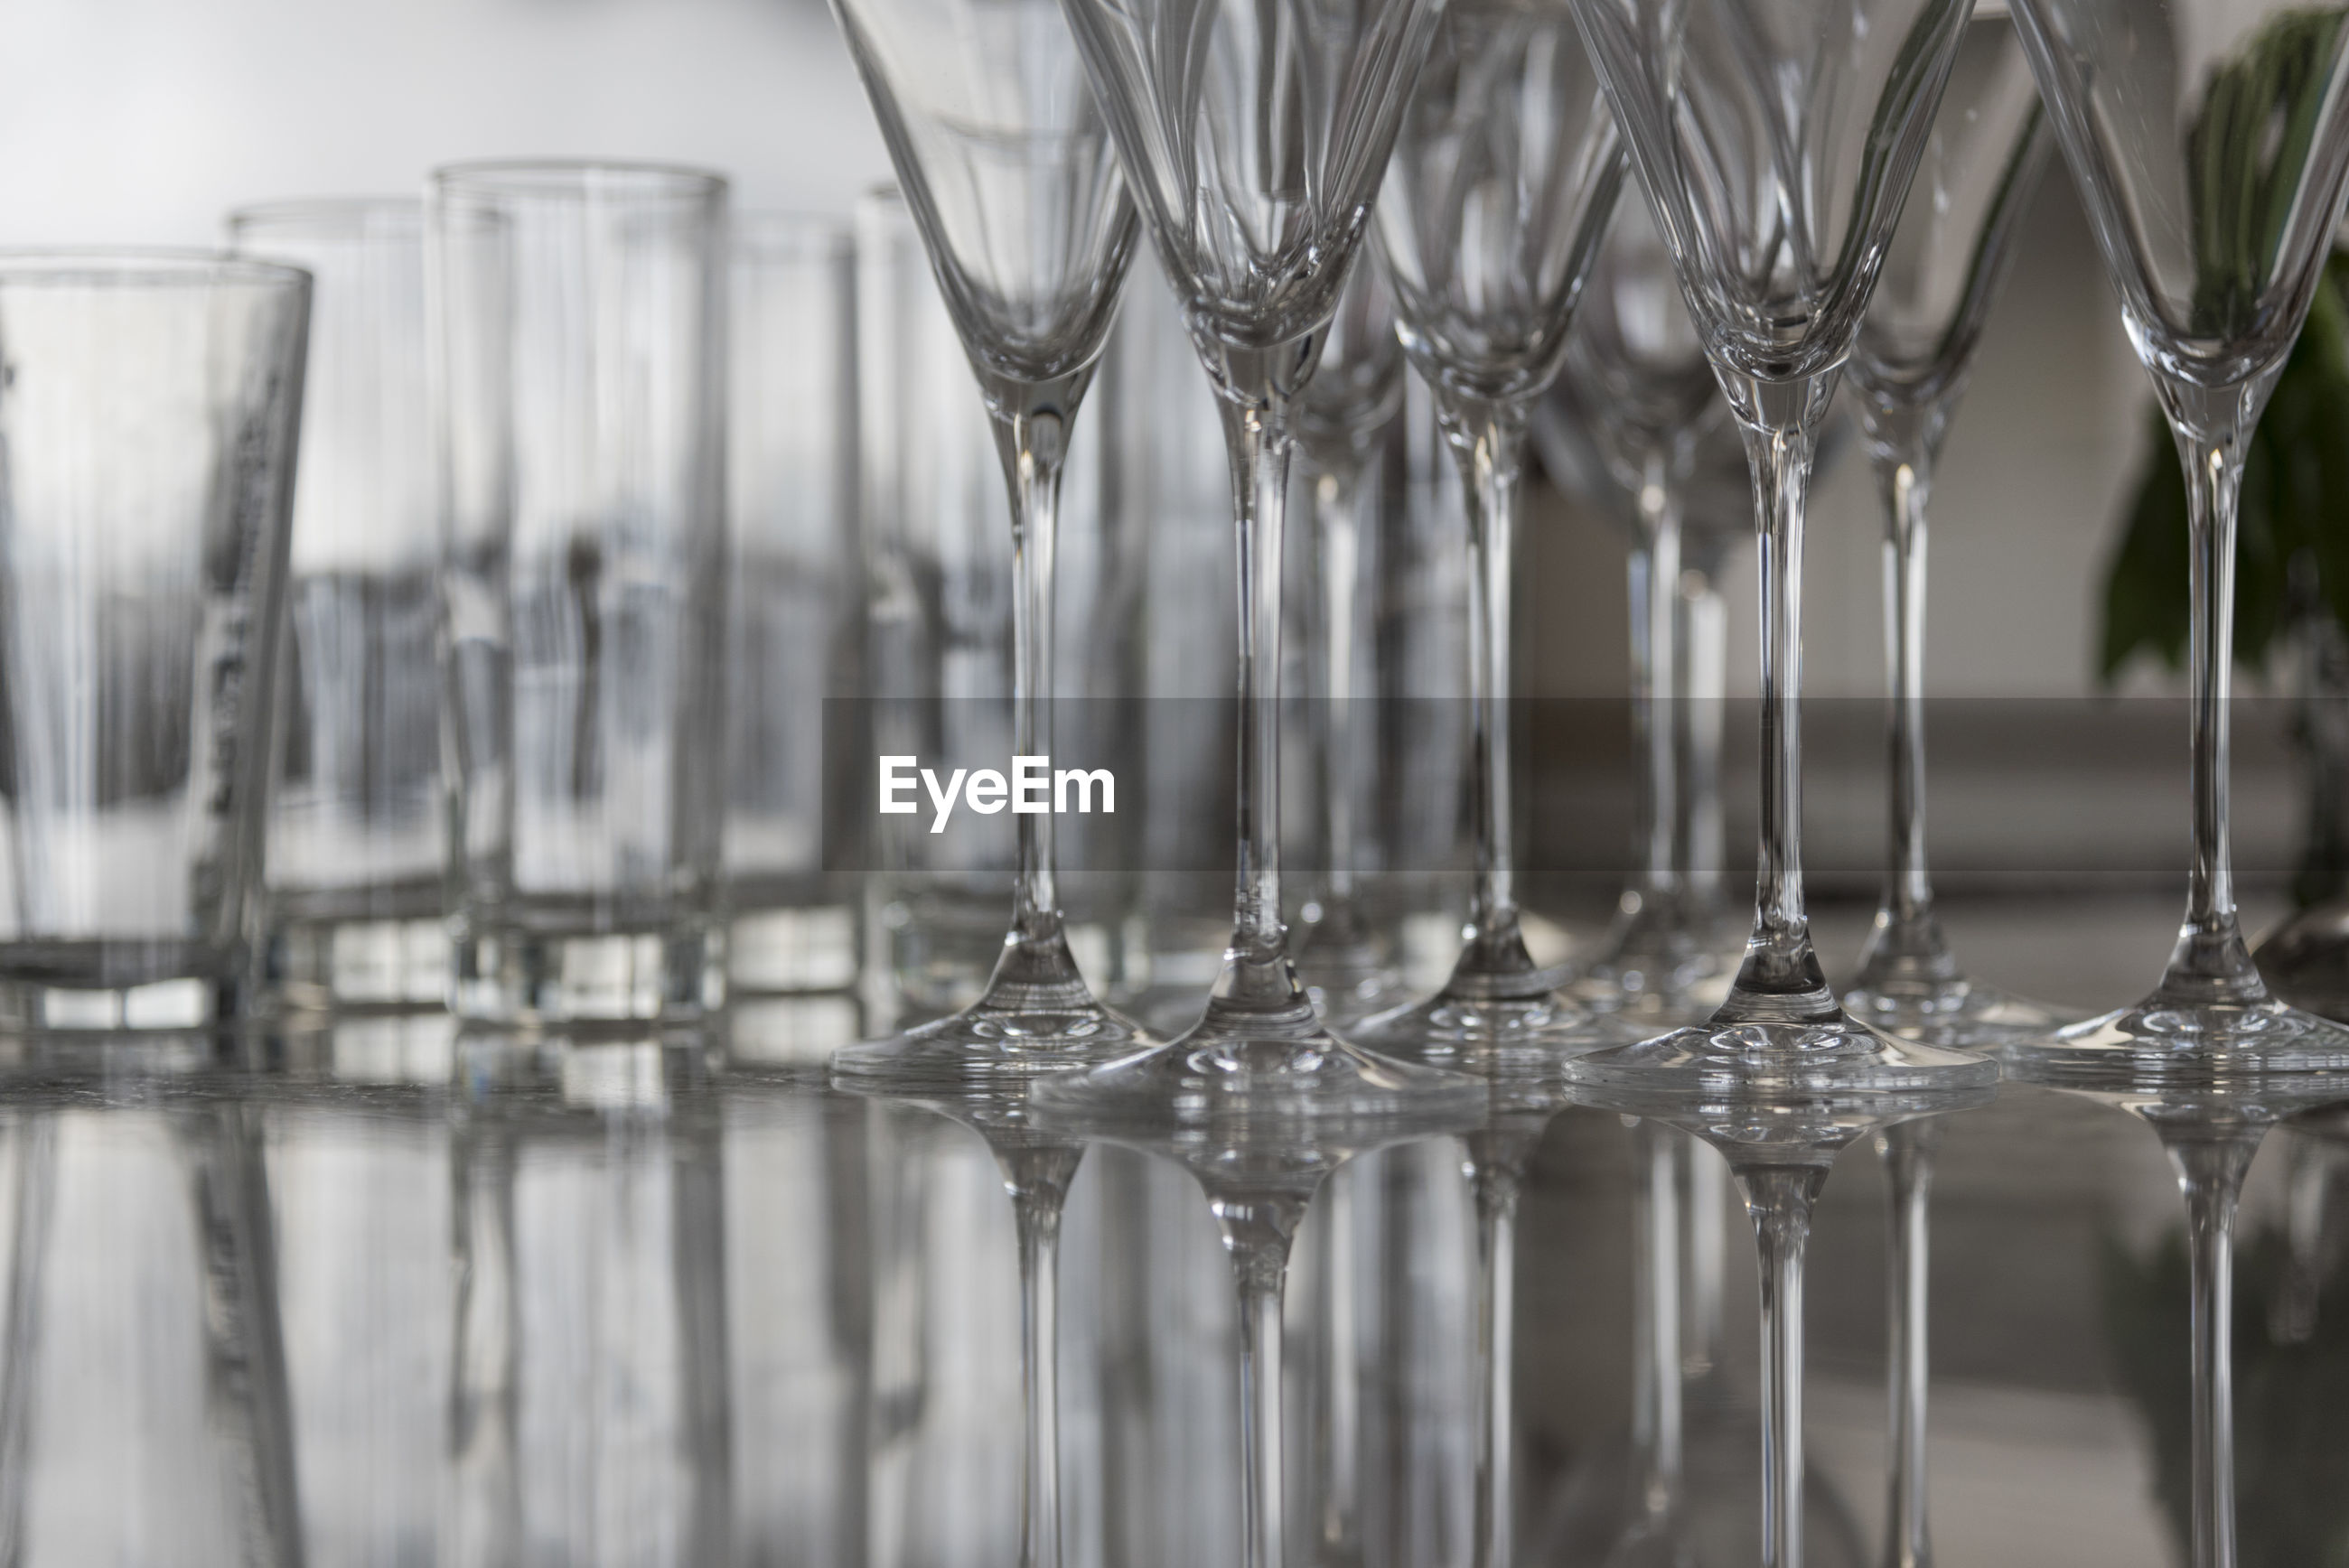 Close-up of empty drinking glasses on table at restaurant